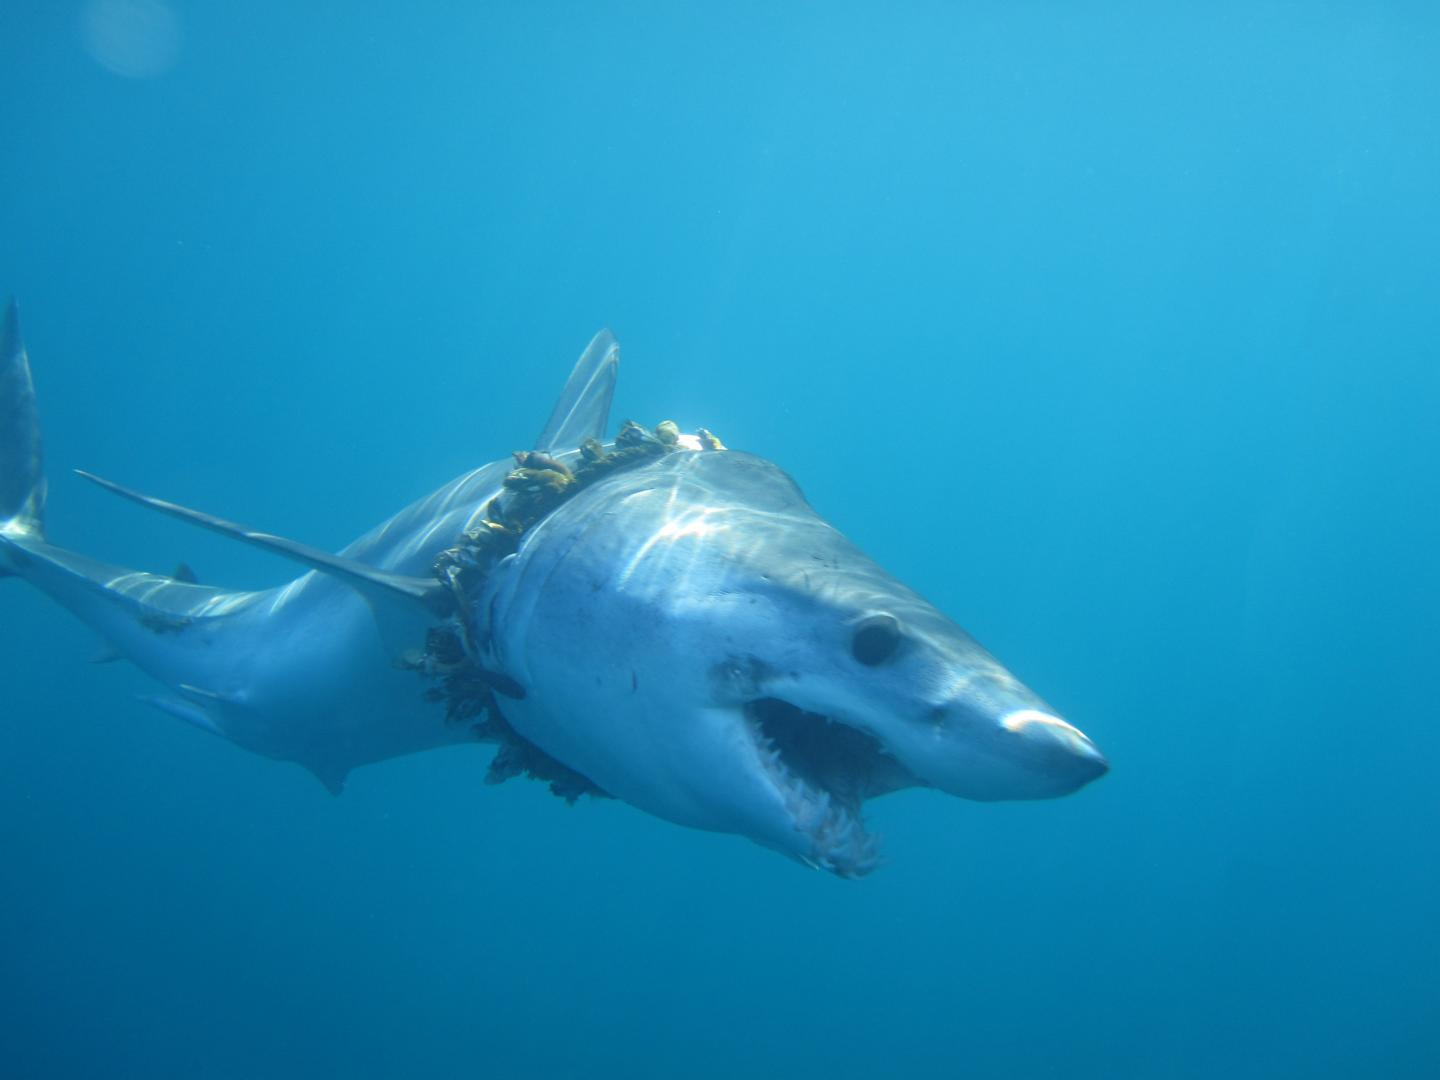 A Shark Entangled in Fishing Rope